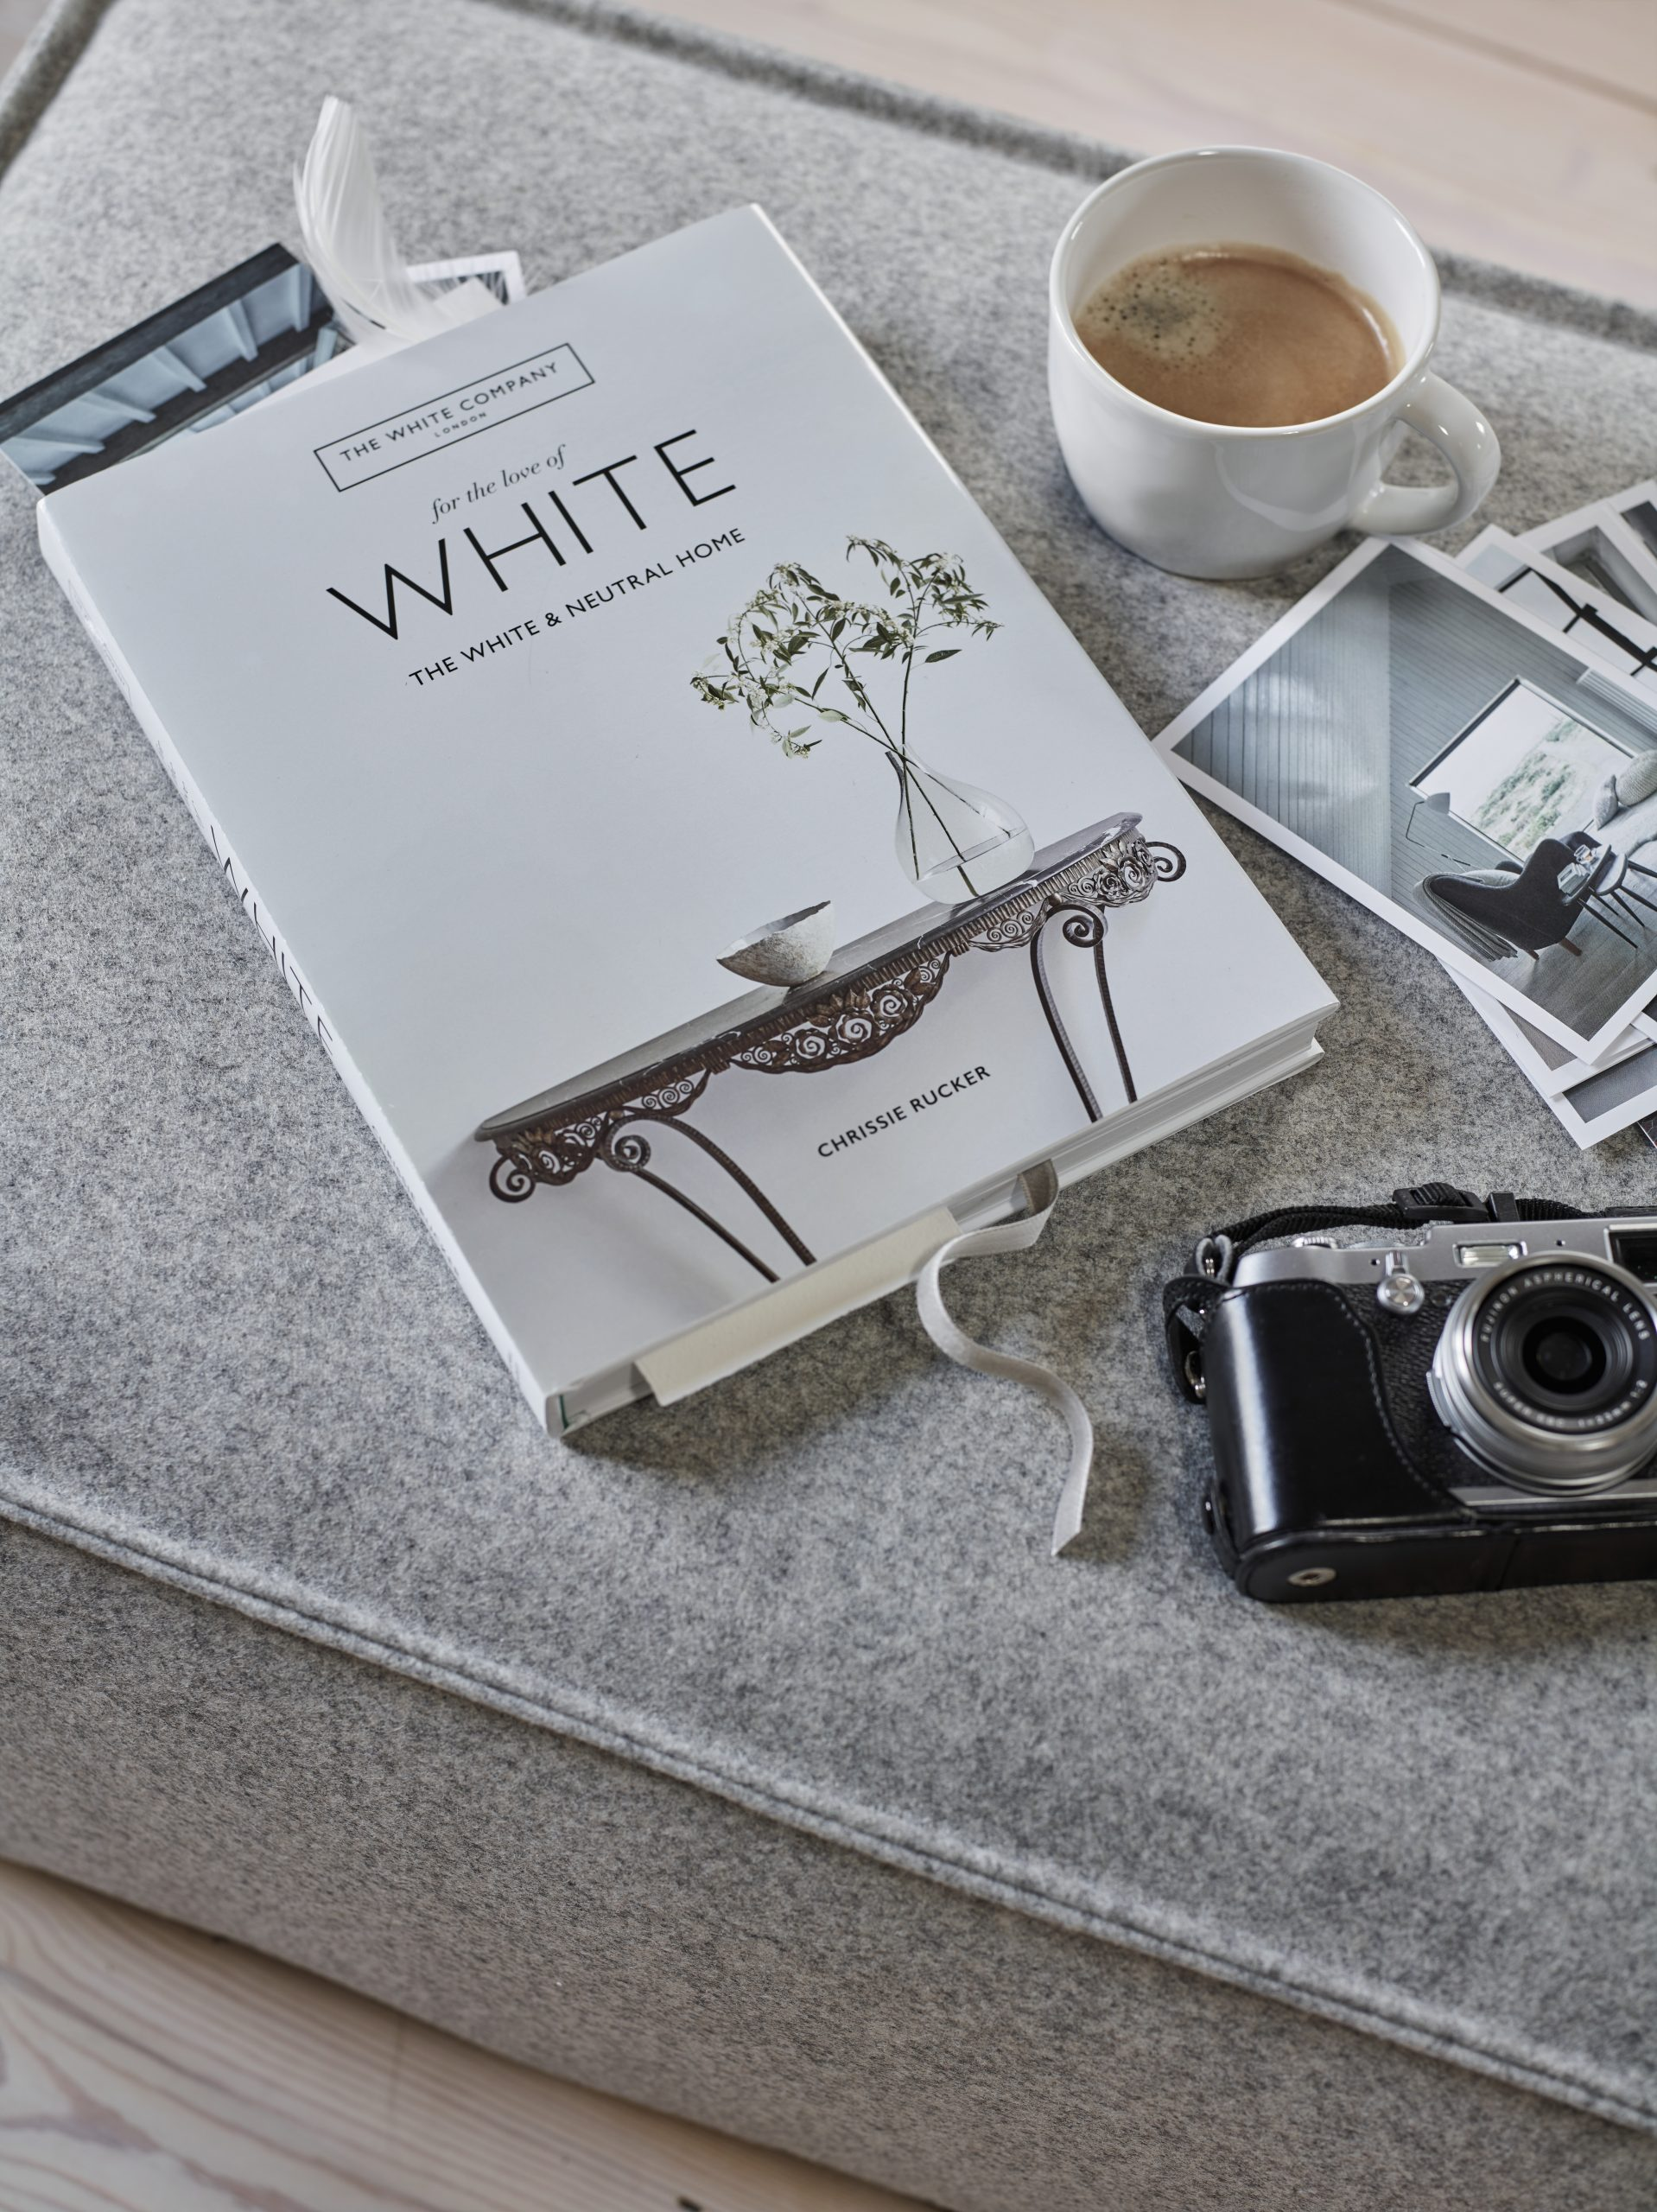 The White Company book For the Love of White